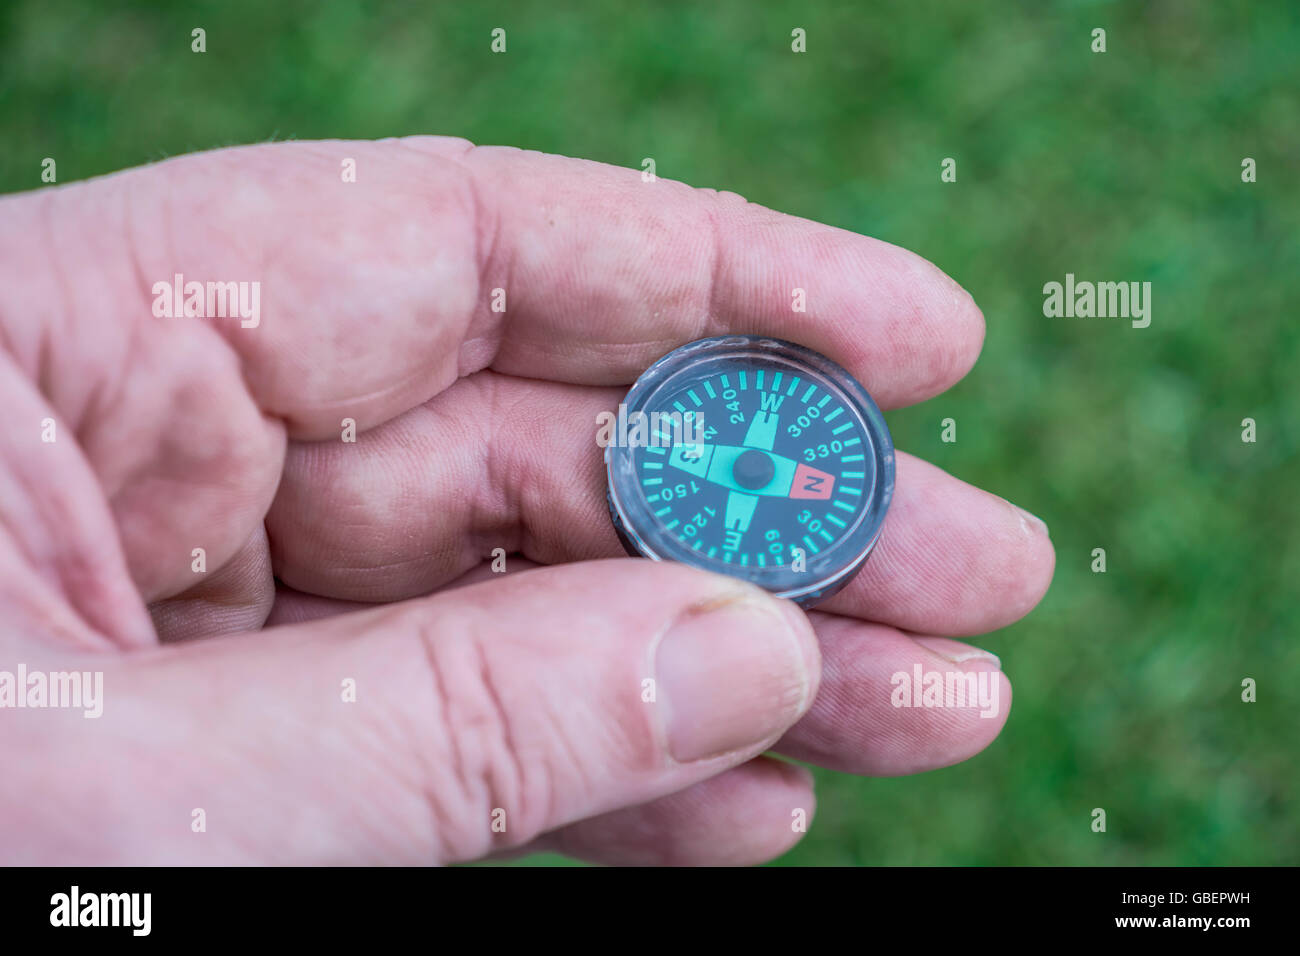 Concept of direction navigation, and knowing where you are going or finding your way, illustrated by a hand-held - Stock Image